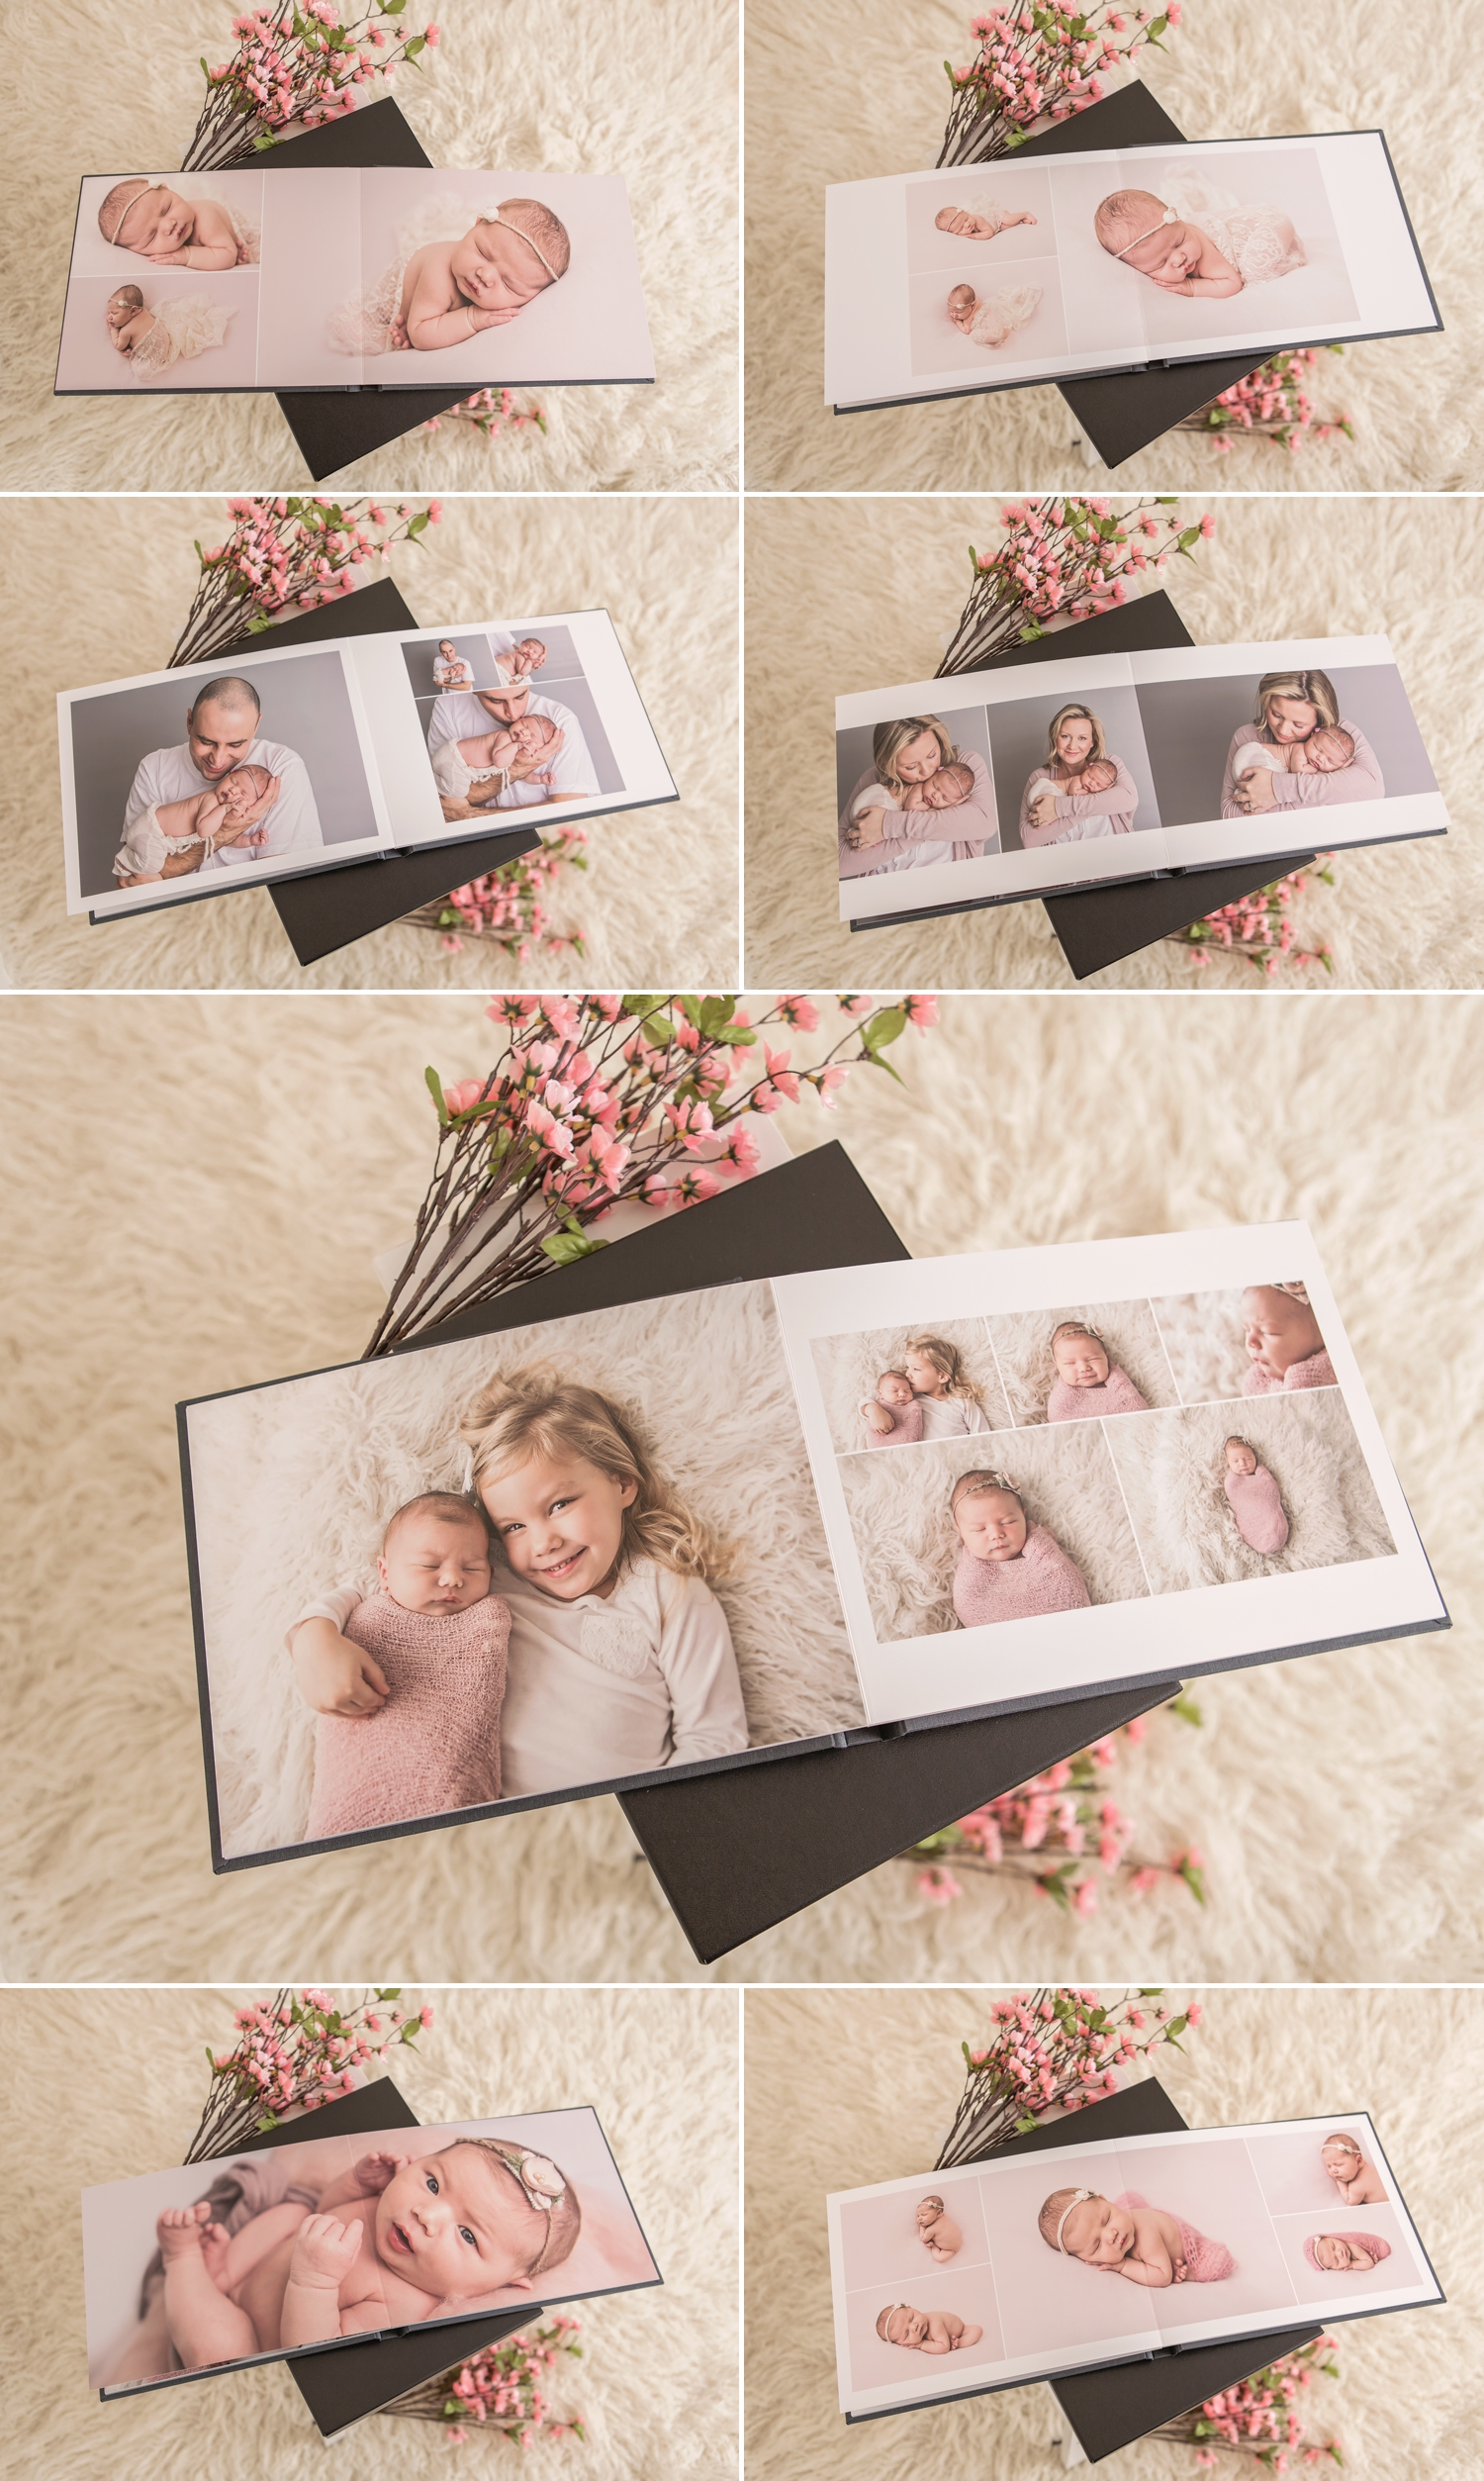 Heirloom Albums - Barrie Photography Studio 2